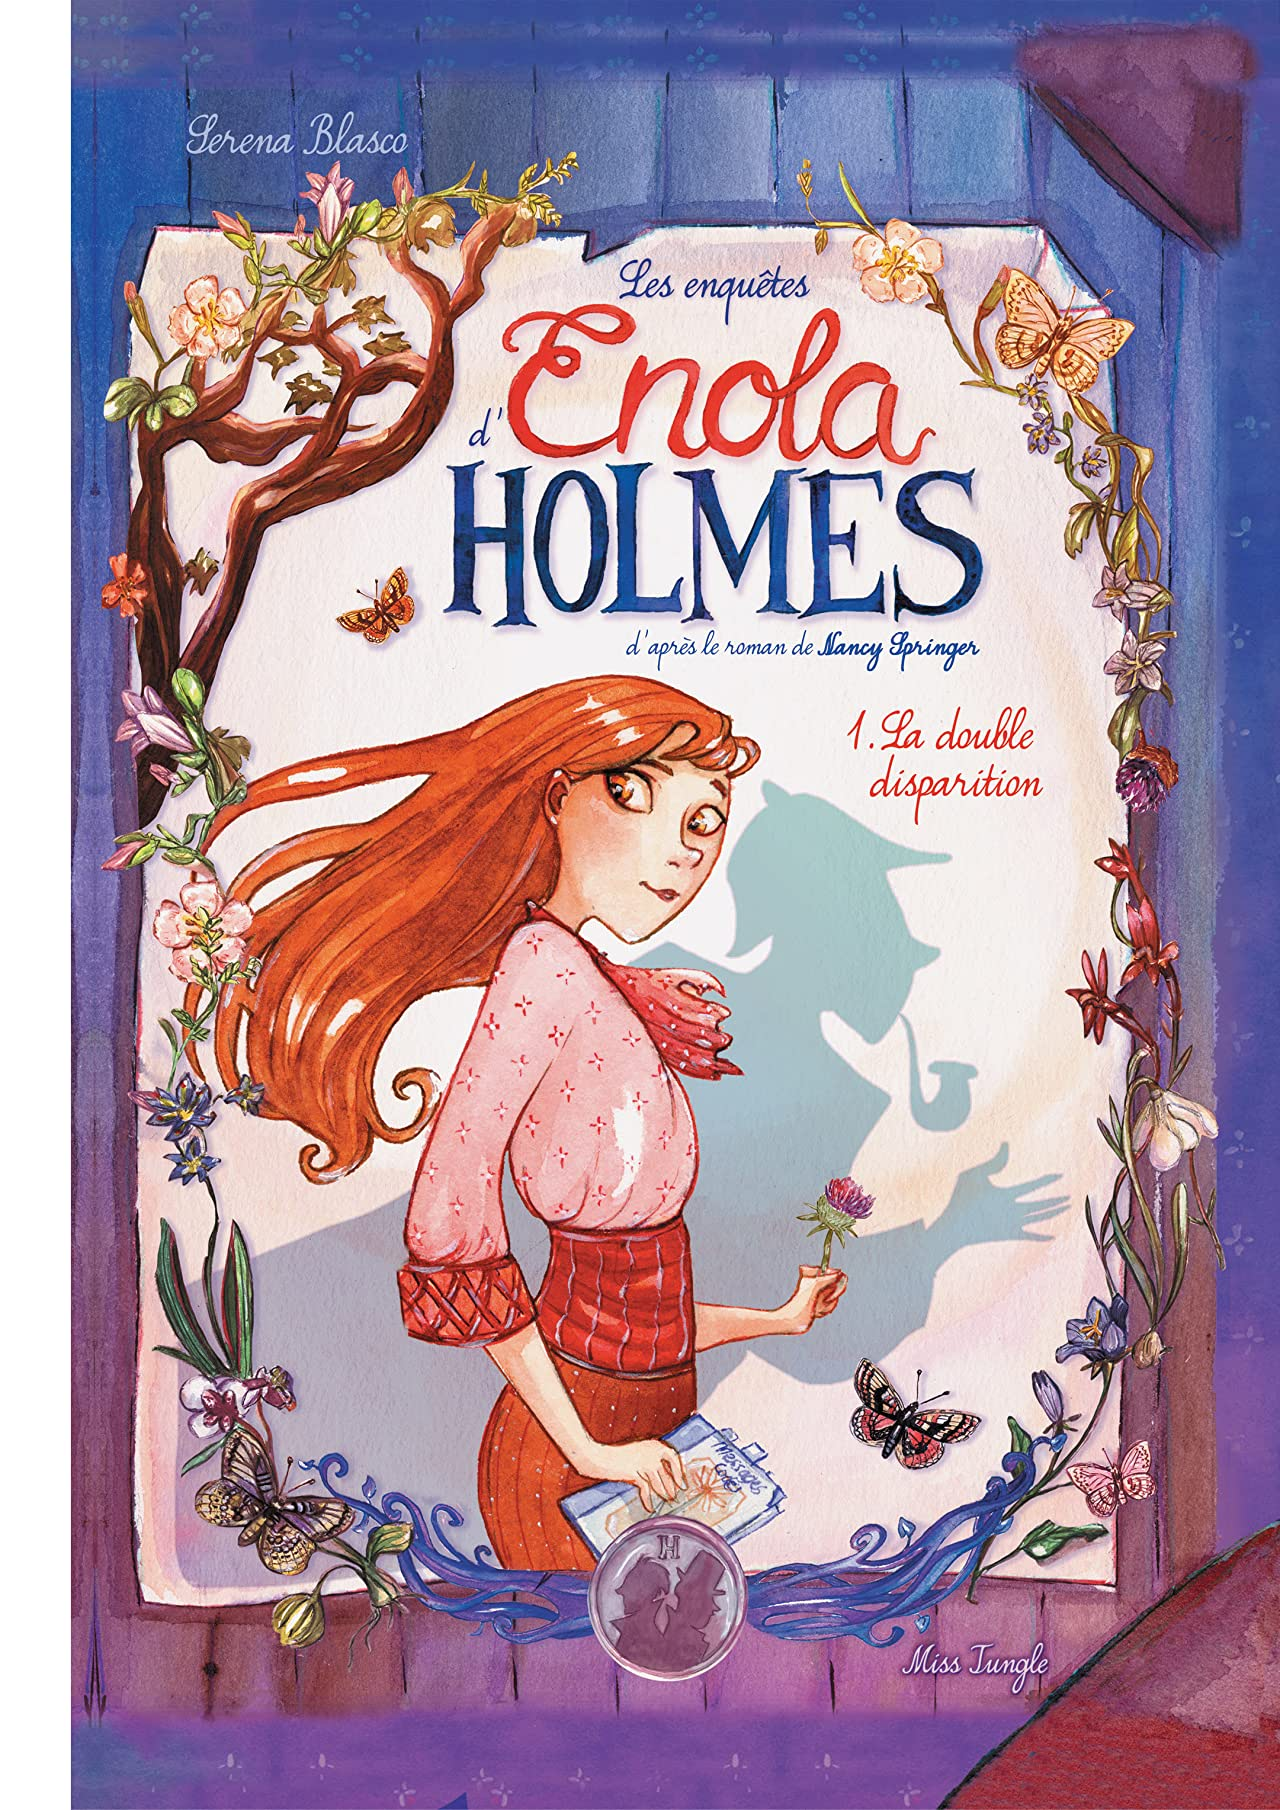 Enola Holmes Vol. 1: La double disparition